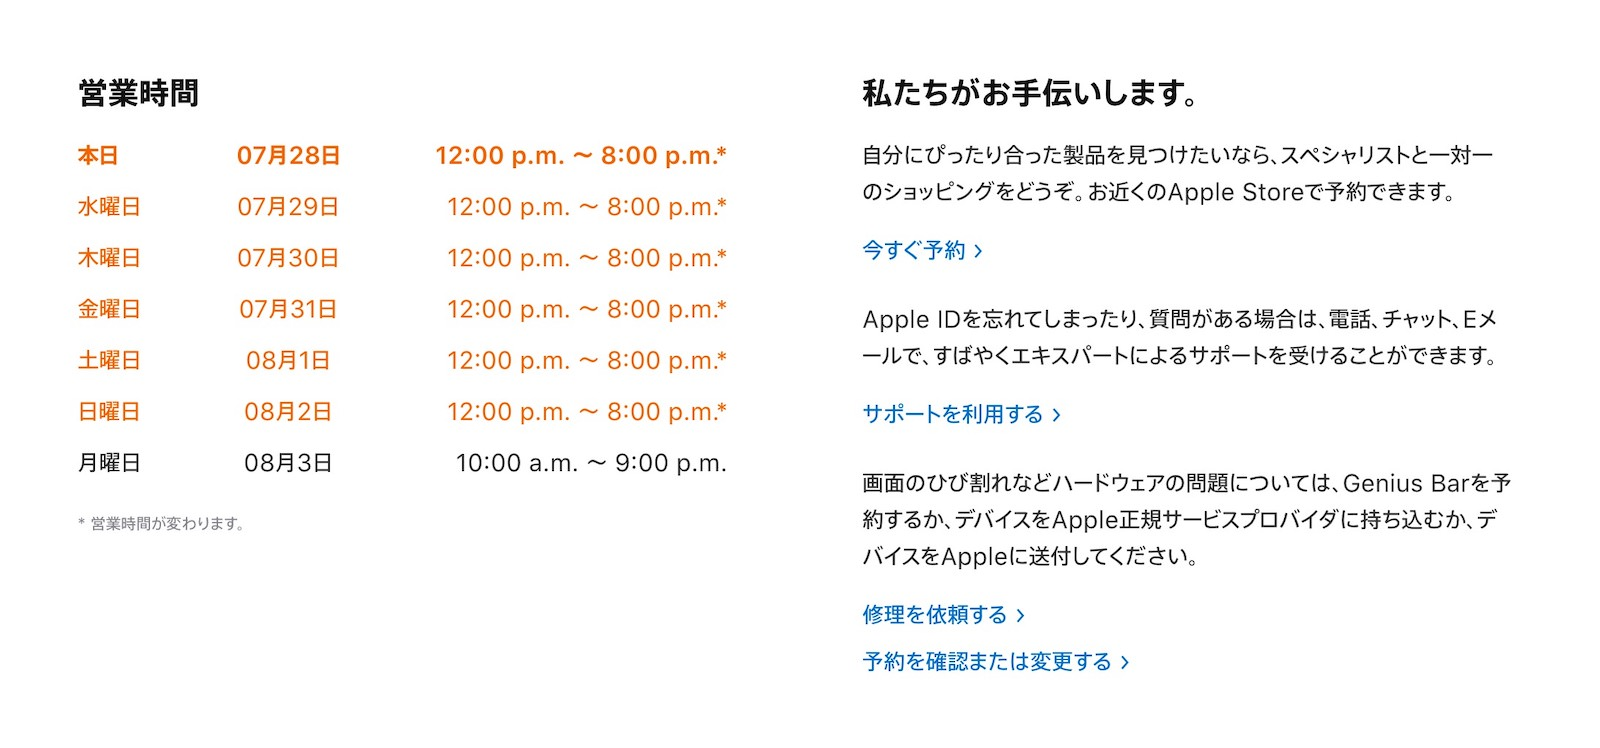 Apple Shibuya Going back to normal schedule 2